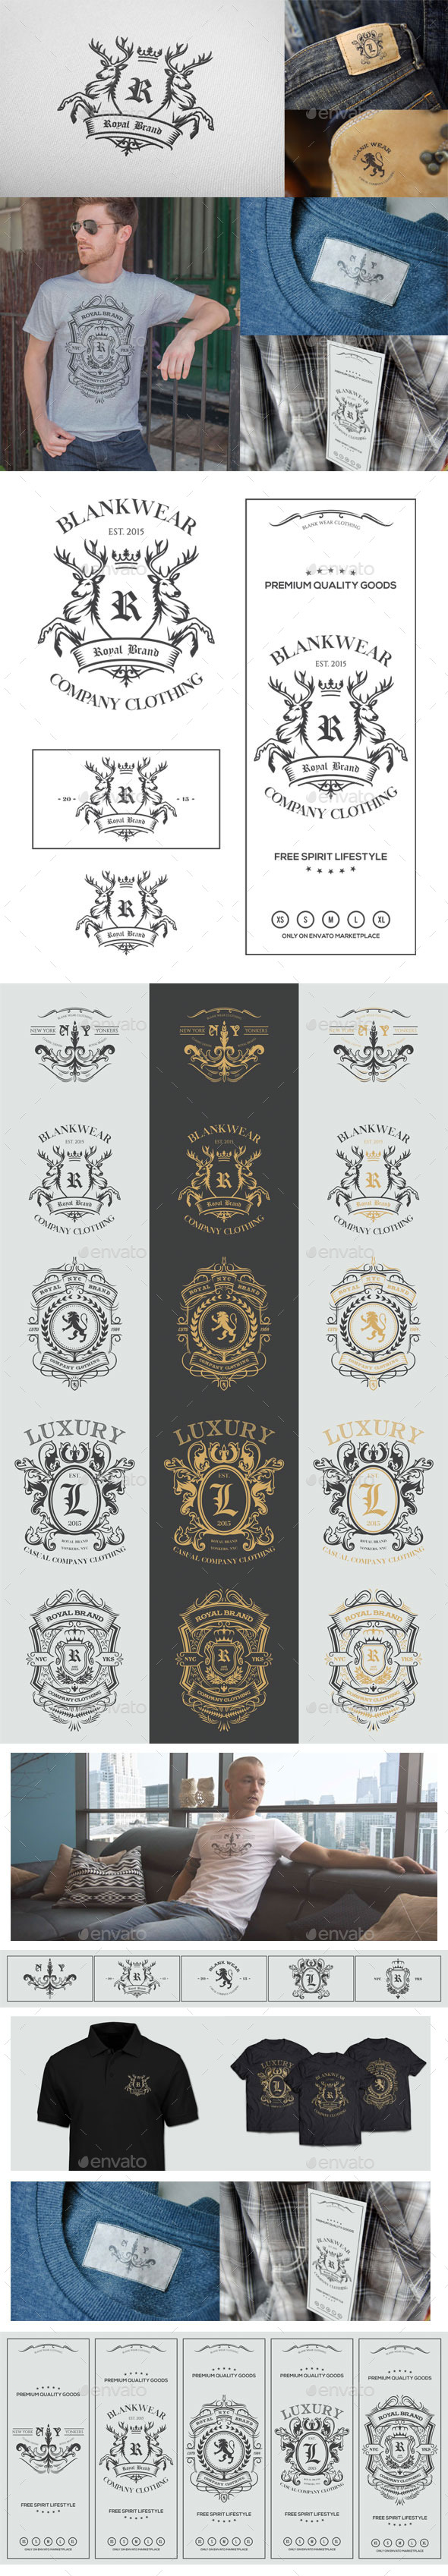 GraphicRiver T-Shirt Template Brand Identity 11783991